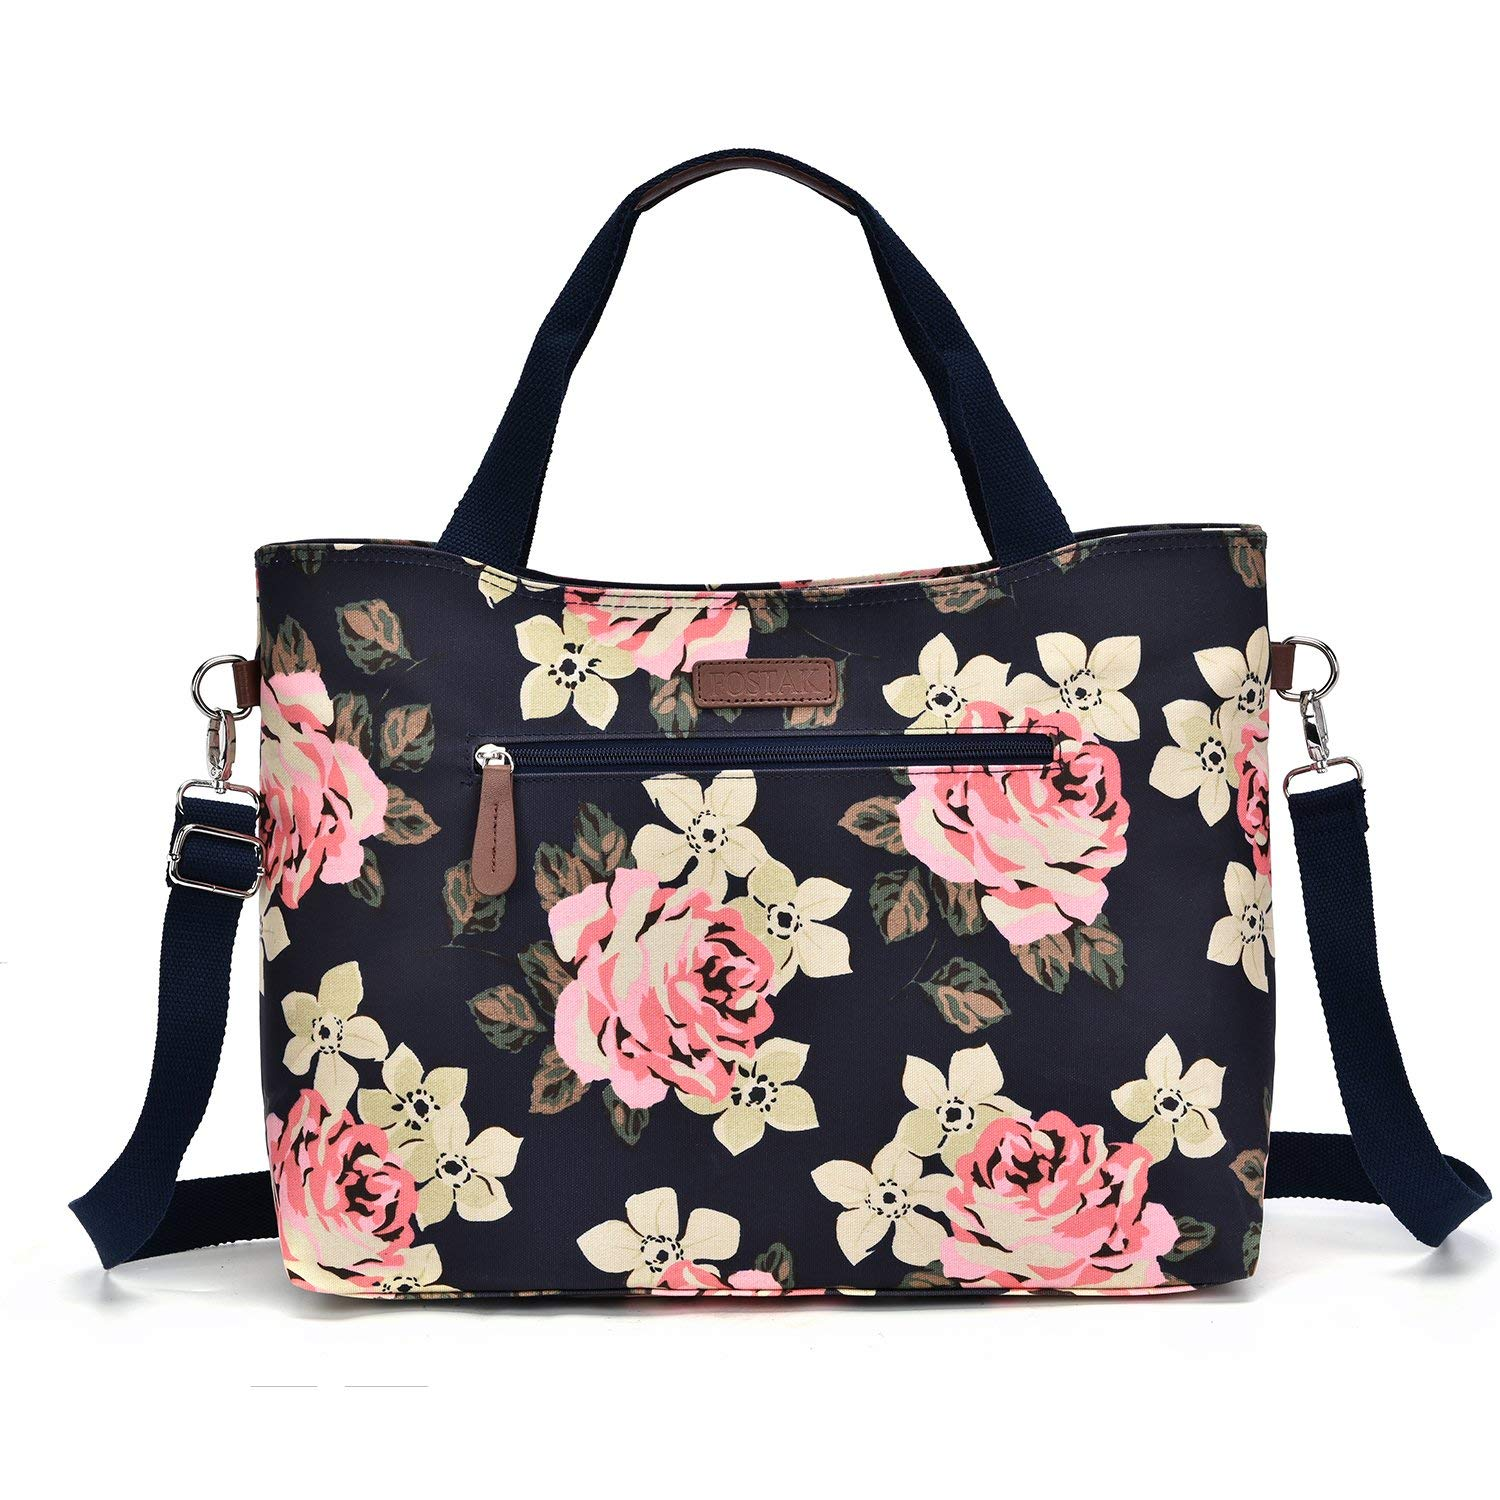 b161f174b7 Get Quotations · 15.6 inch Fashion Lightweight Laptop Tote Bag for Women  with Shoulder Strap